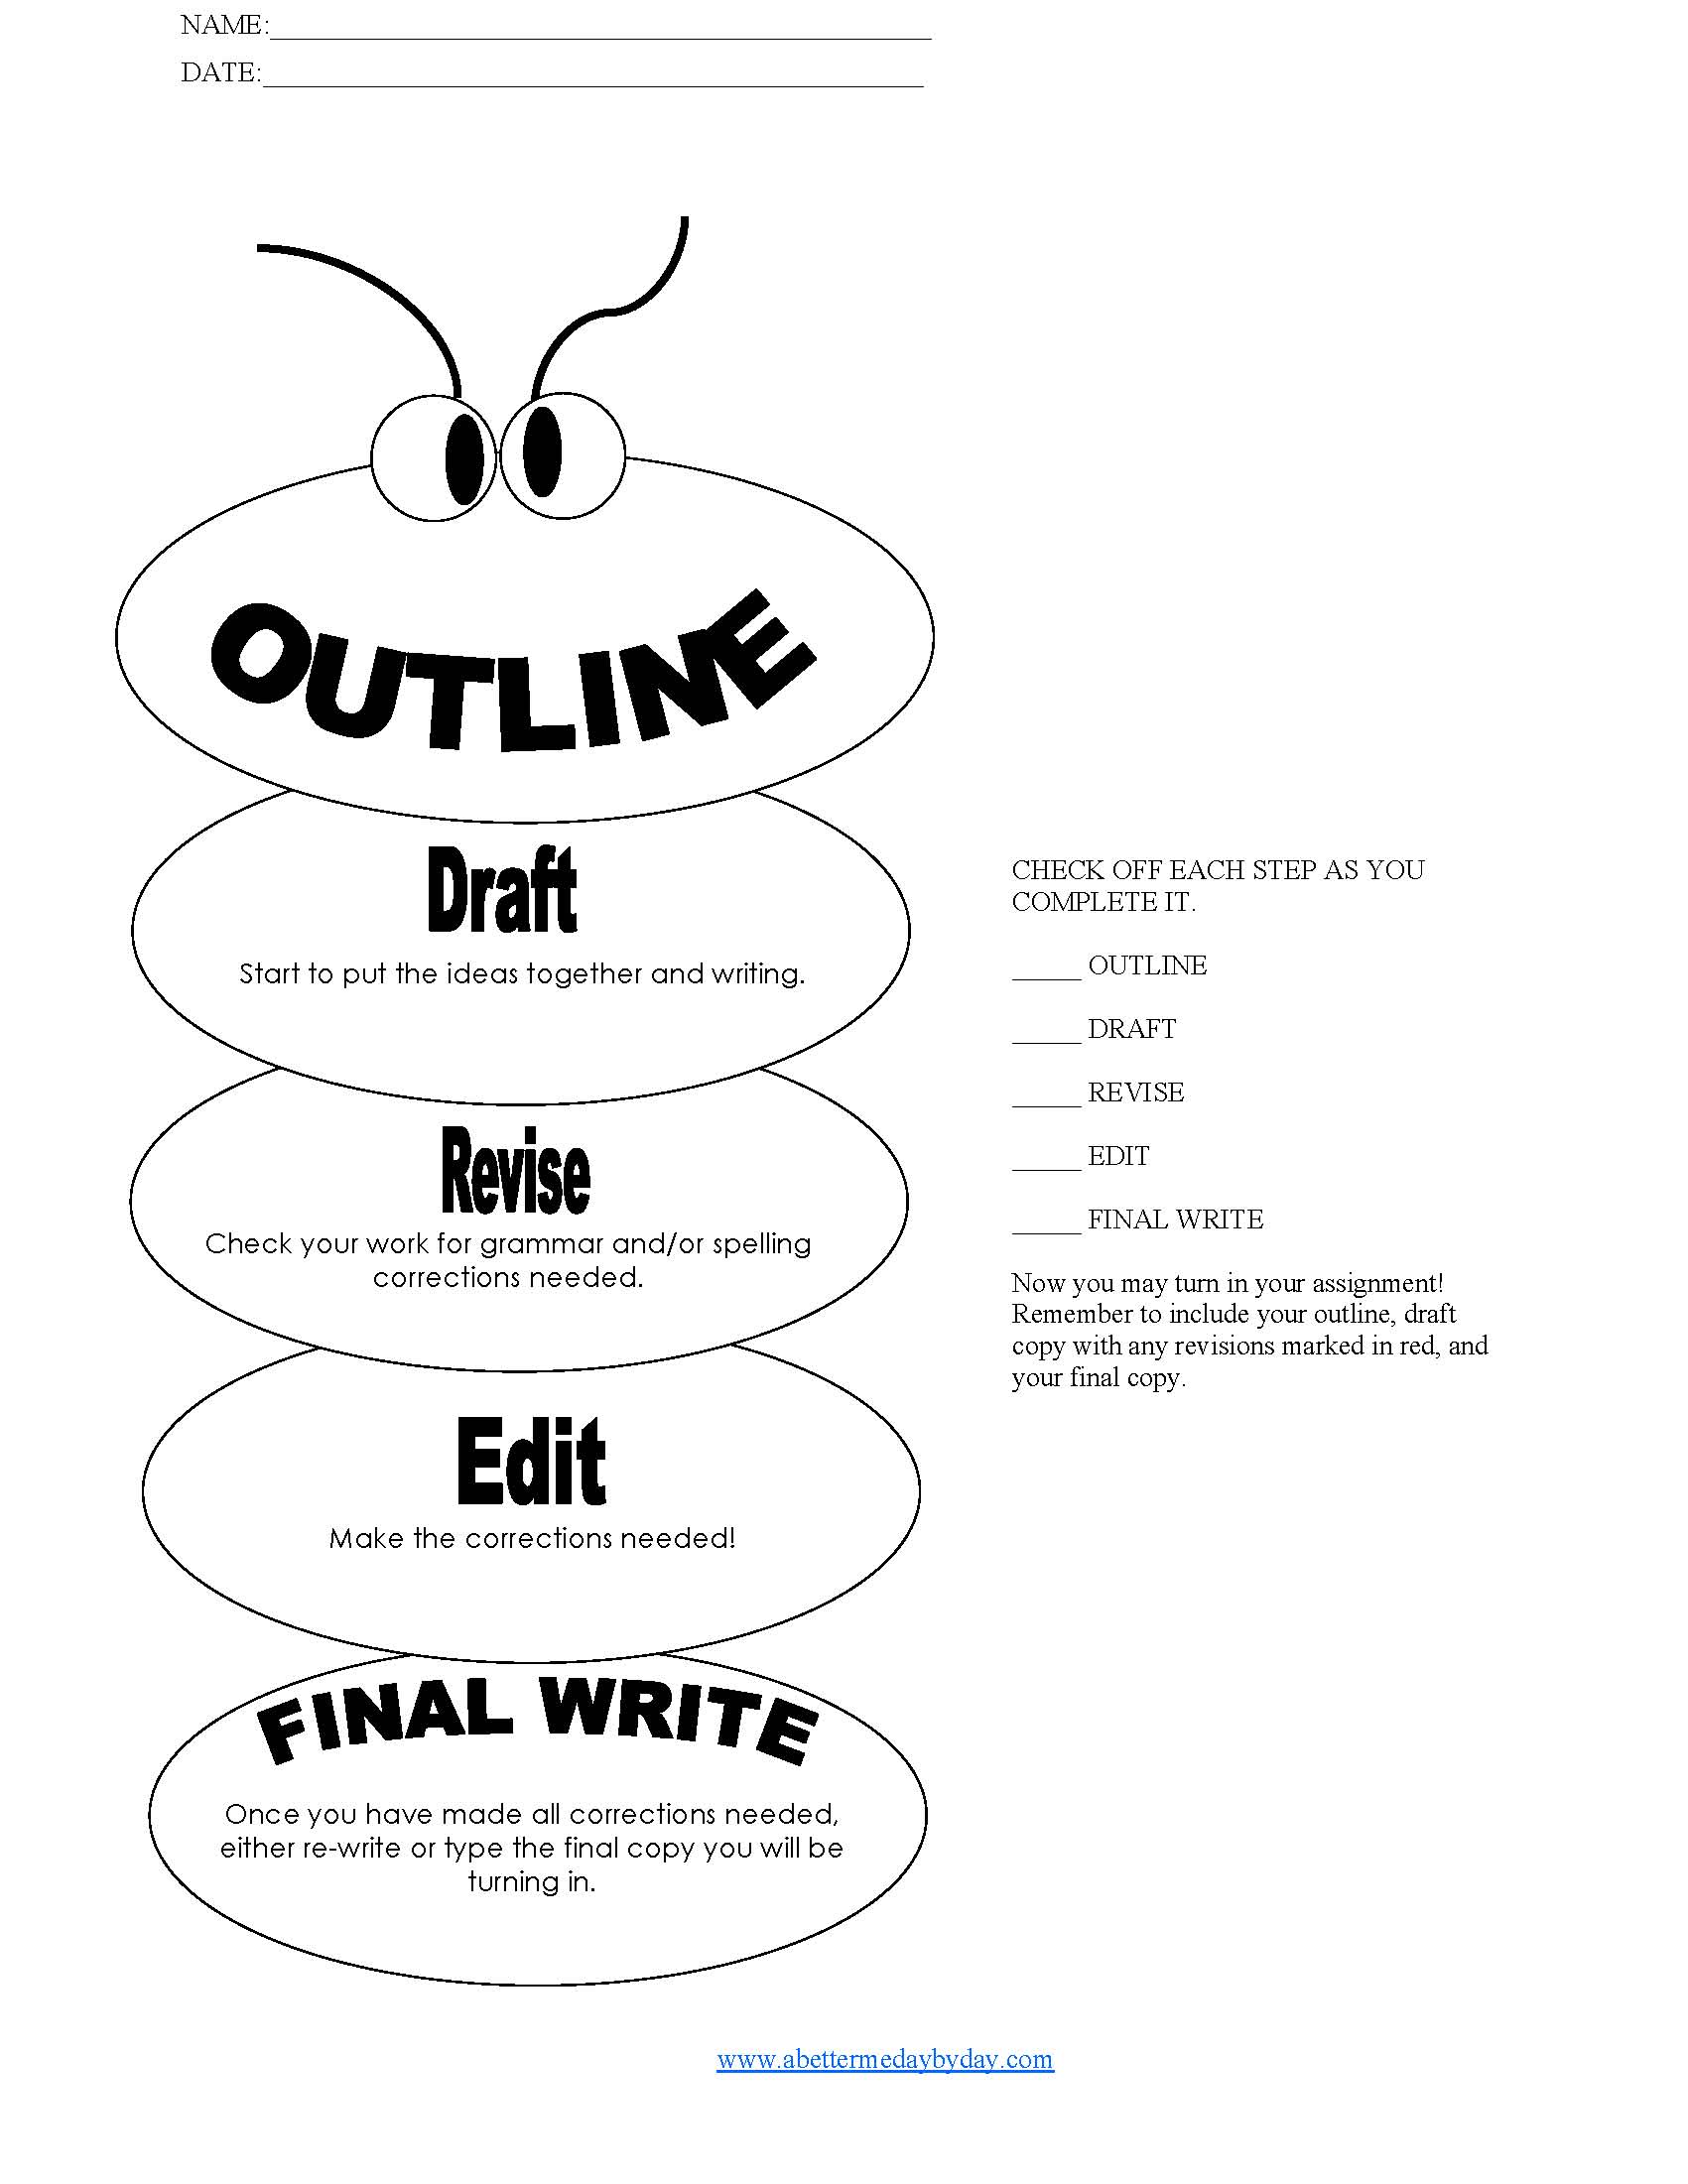 10 easy rules to writing an essay How to write an essay obfuscata, essay outline template examples of format and structure, expert rules for writing fiction writer 39 s life org, essay structure.